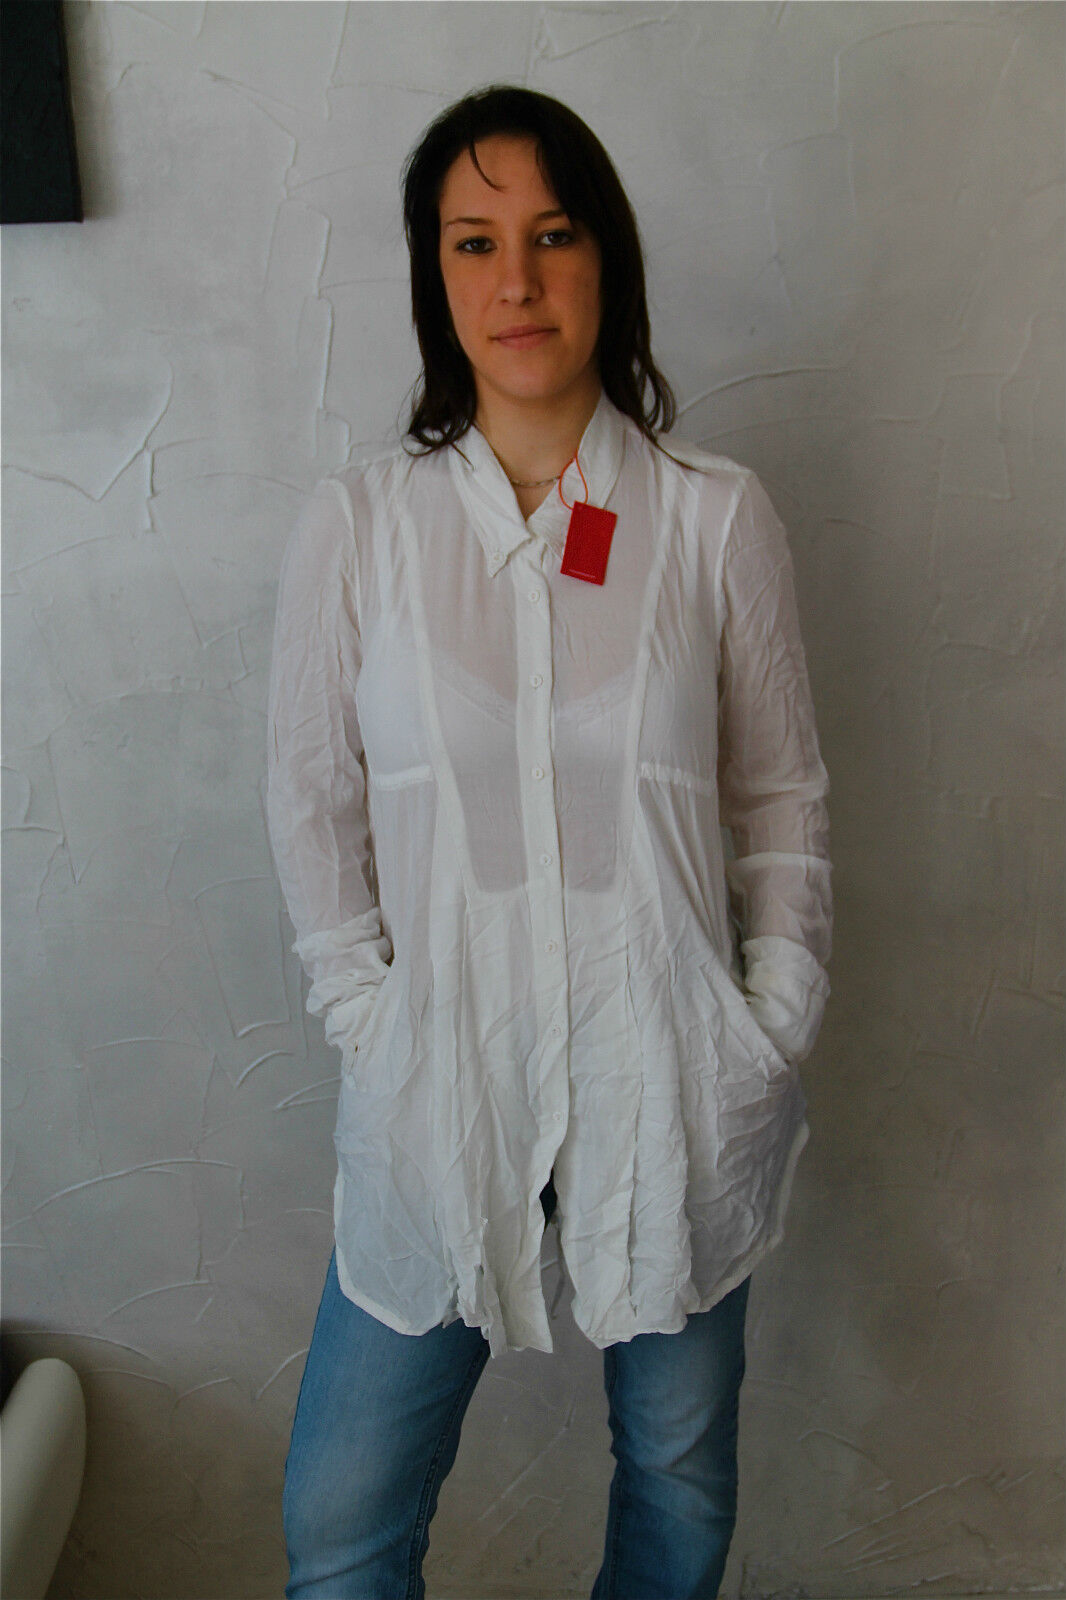 Tunic Tunic Blouse White M& François Girbaud Actreform T.S New Label